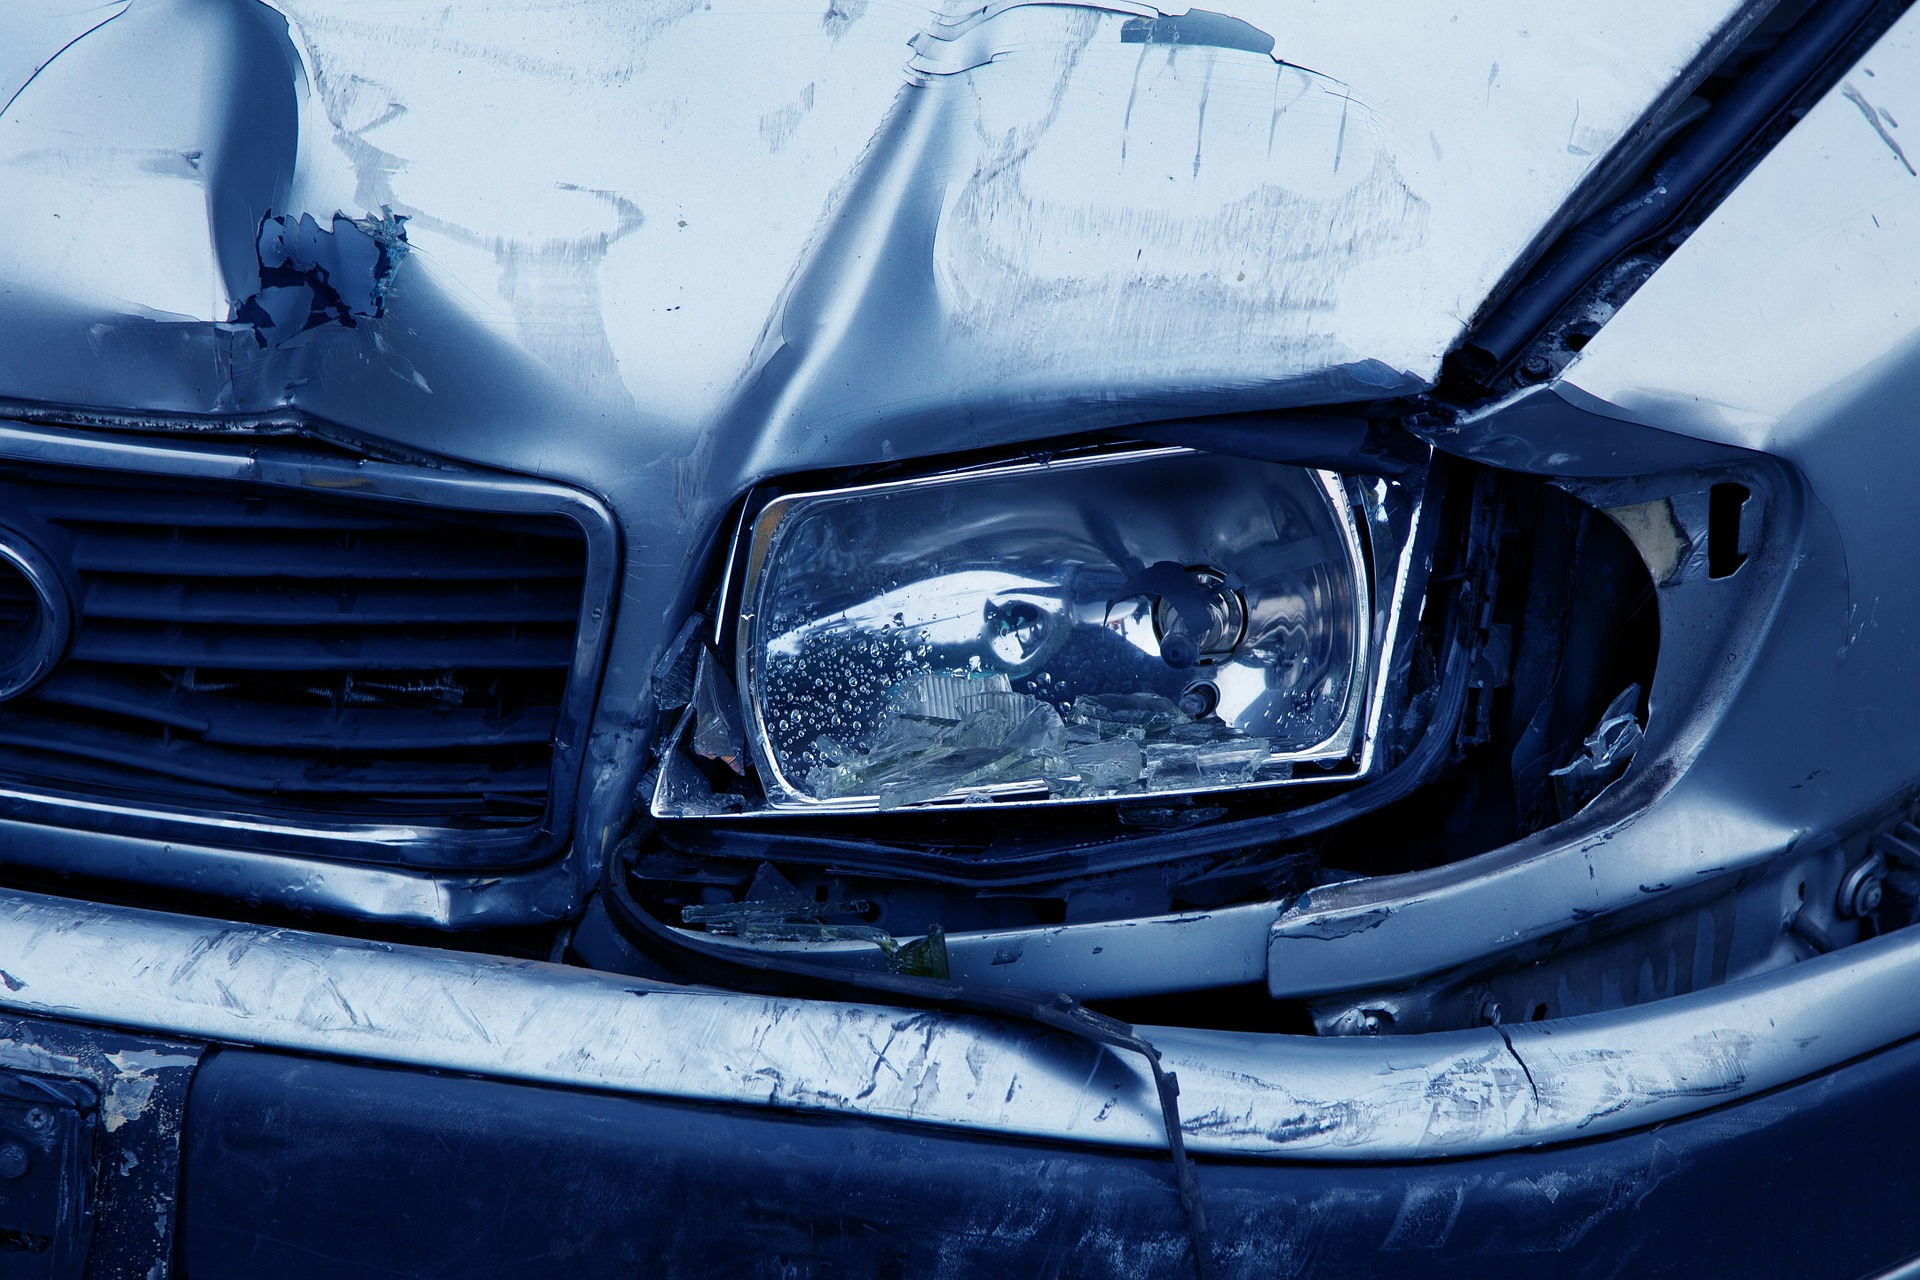 Front end collision showing damage to car bumper grille headlights and hood